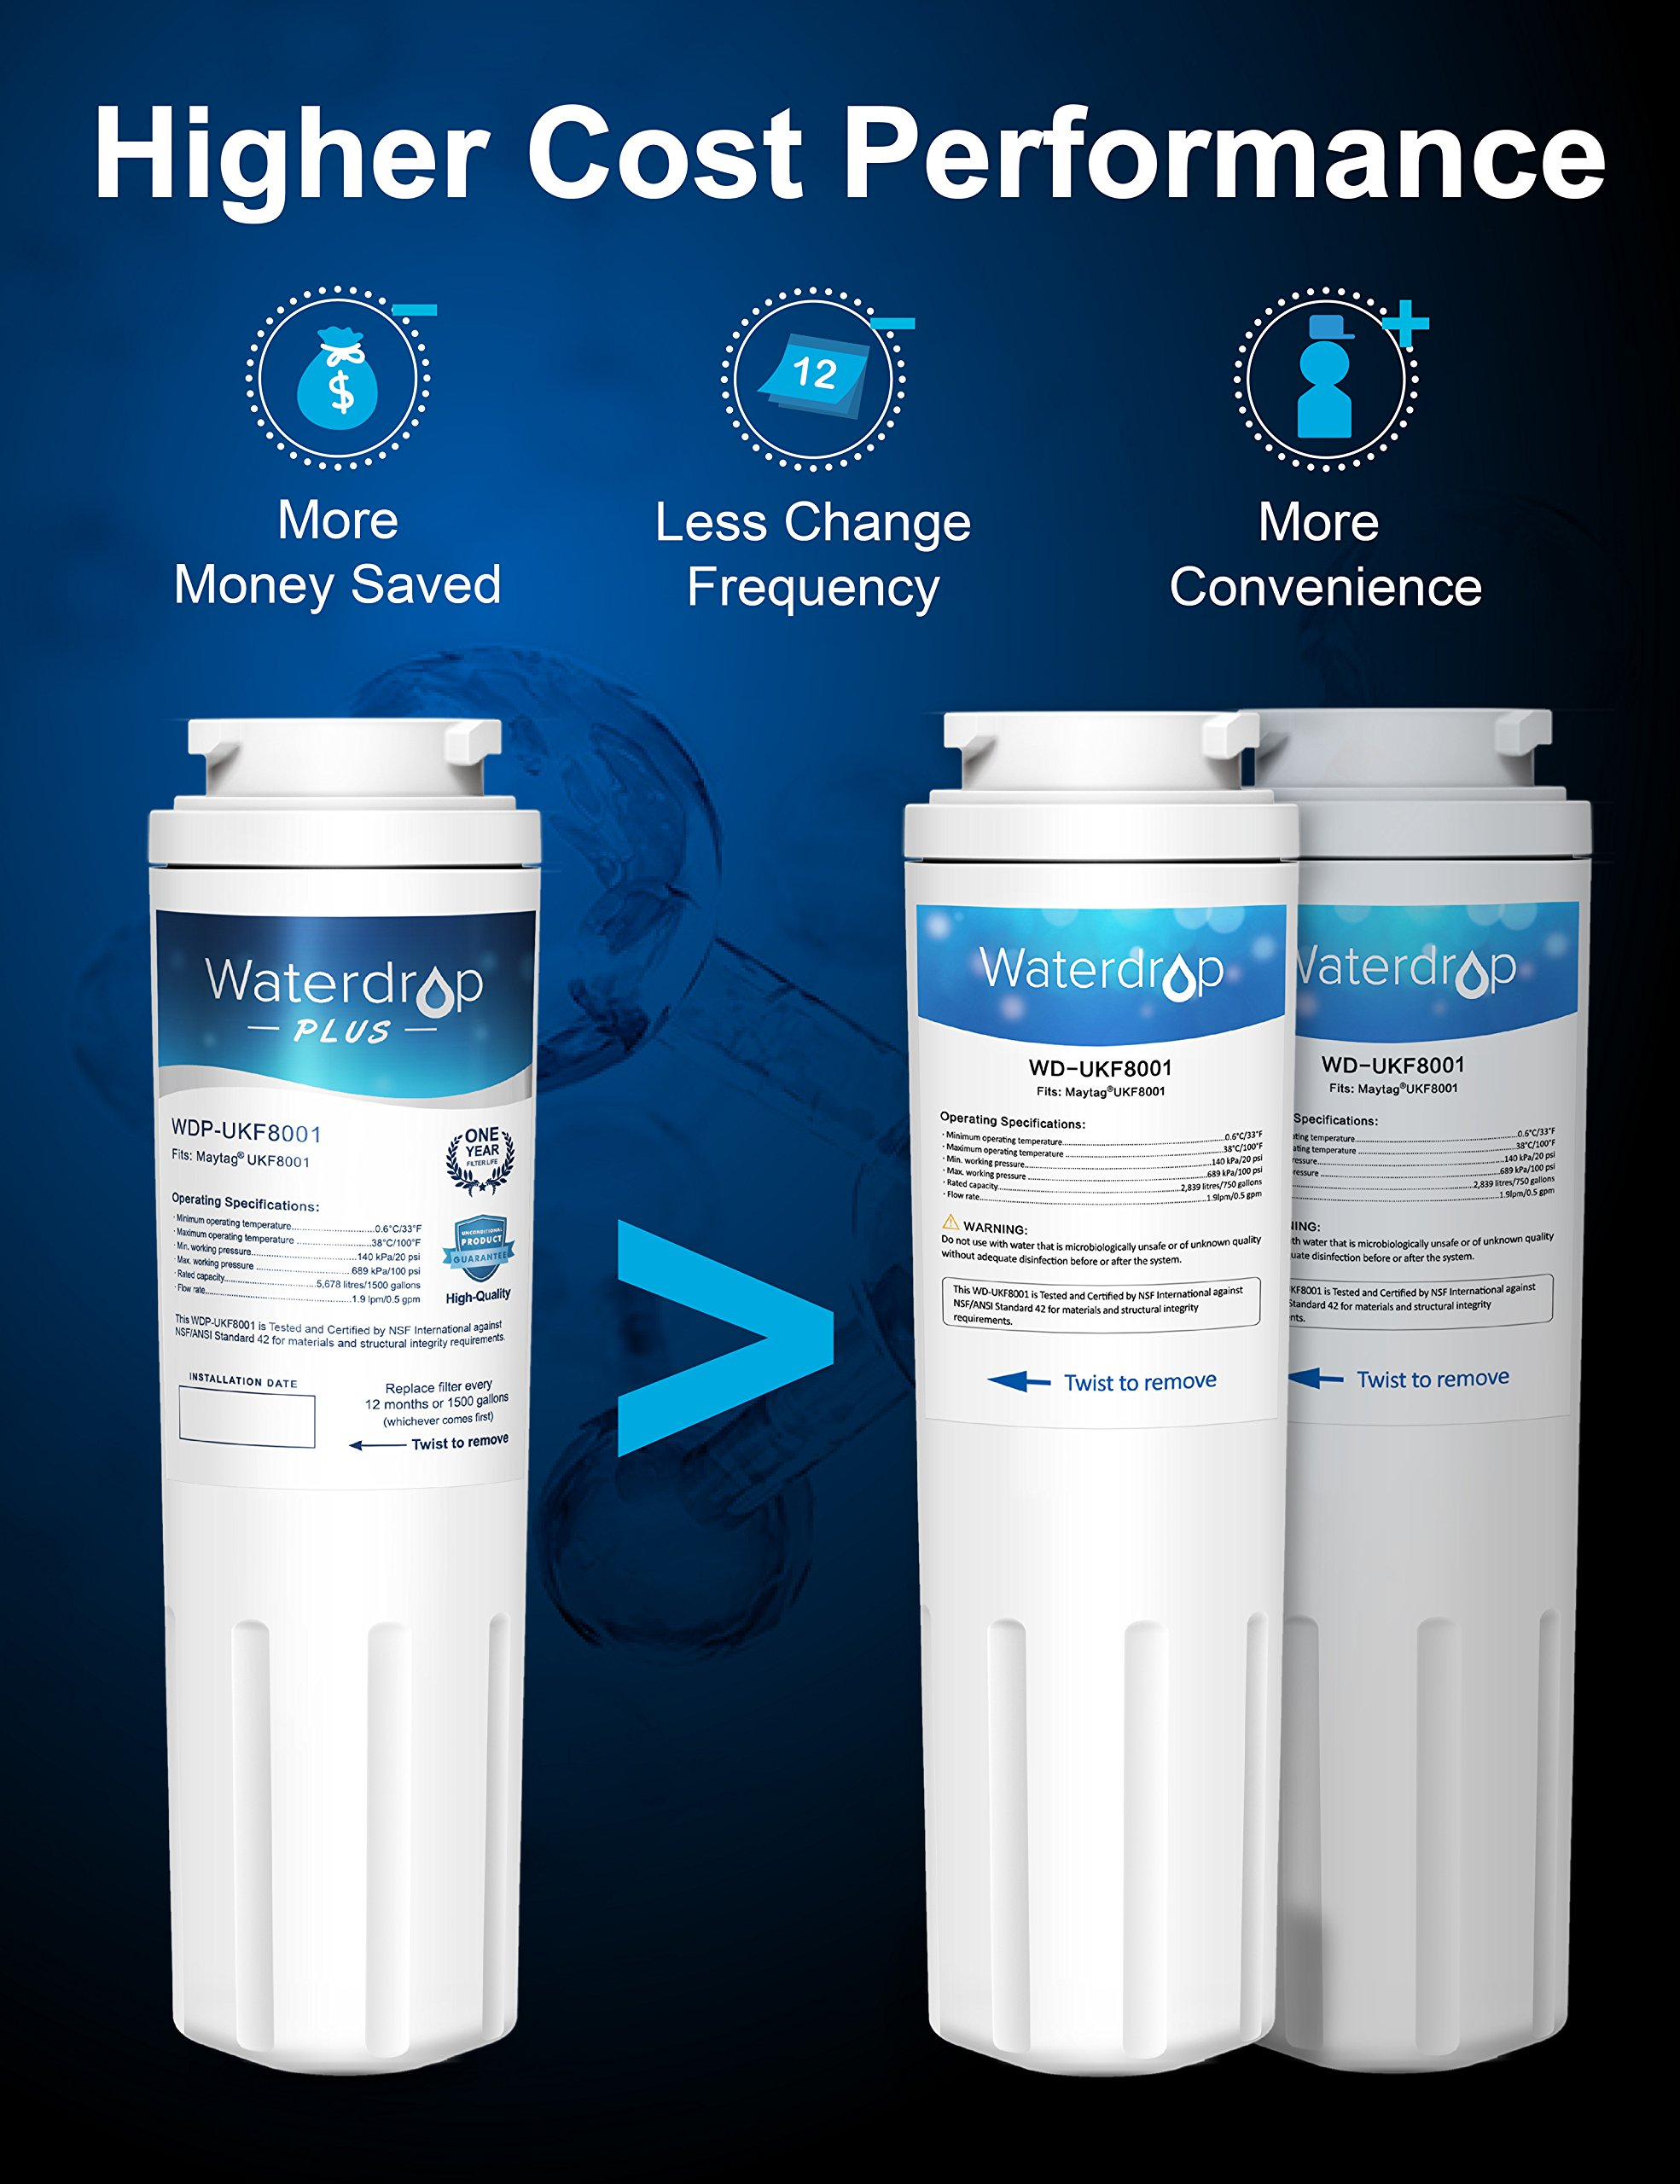 Waterdrop Plus UKF8001 Double Lifetime Refrigerator Water Filter Replacement for Maytag UKF8001, UKF8001AXX, UKF8001P, Whirlpool 4396395, 469006, EDR4RXD1, EveryDrop Filter 4, Puriclean II by Waterdrop (Image #4)